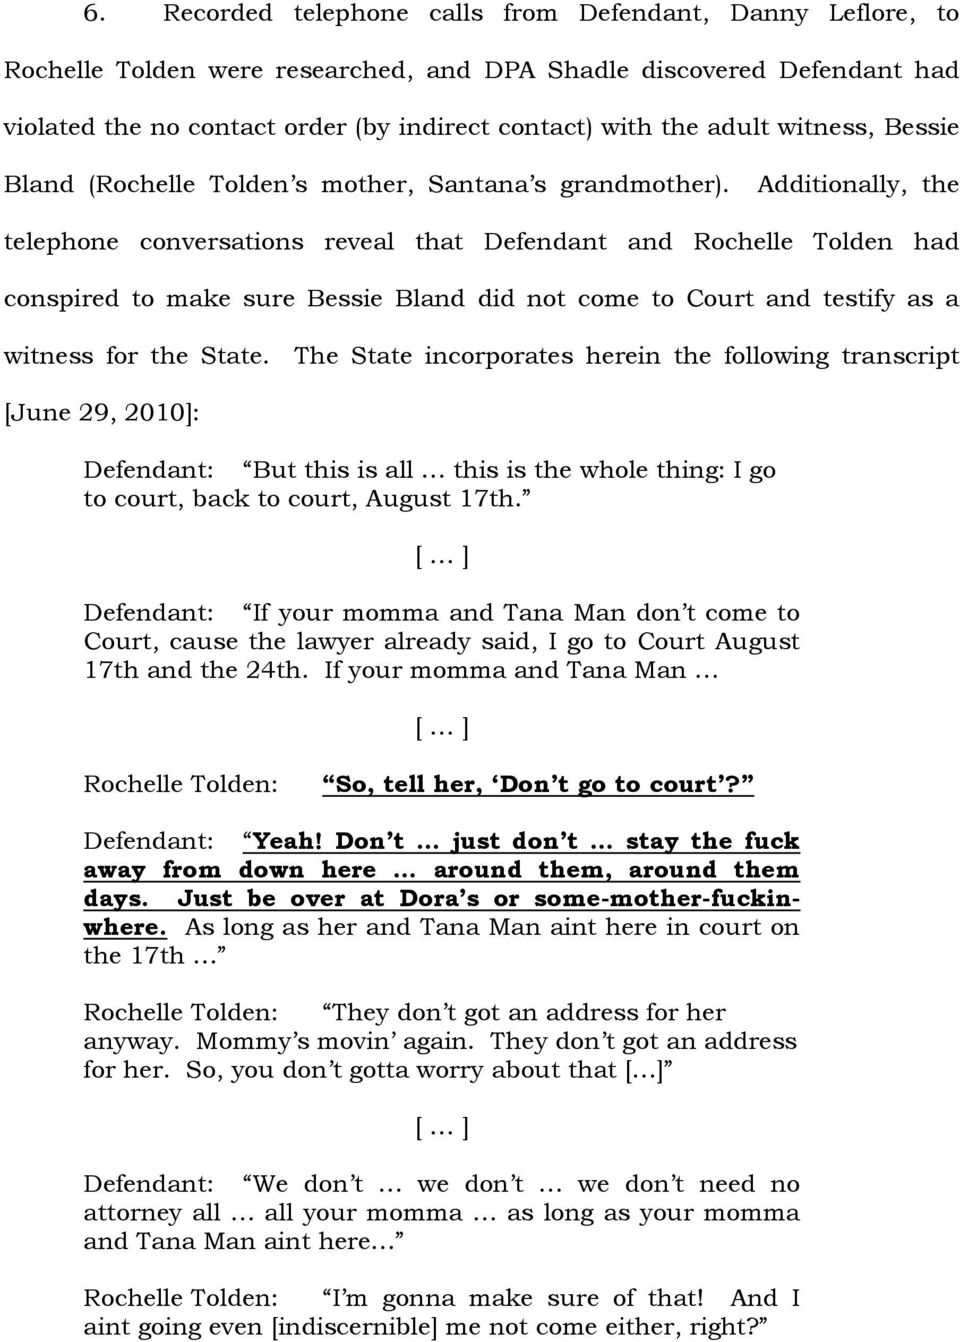 Additionally, the telephone conversations reveal that Defendant and Rochelle Tolden had conspired to make sure Bessie Bland did not come to Court and testify as a witness for the State.